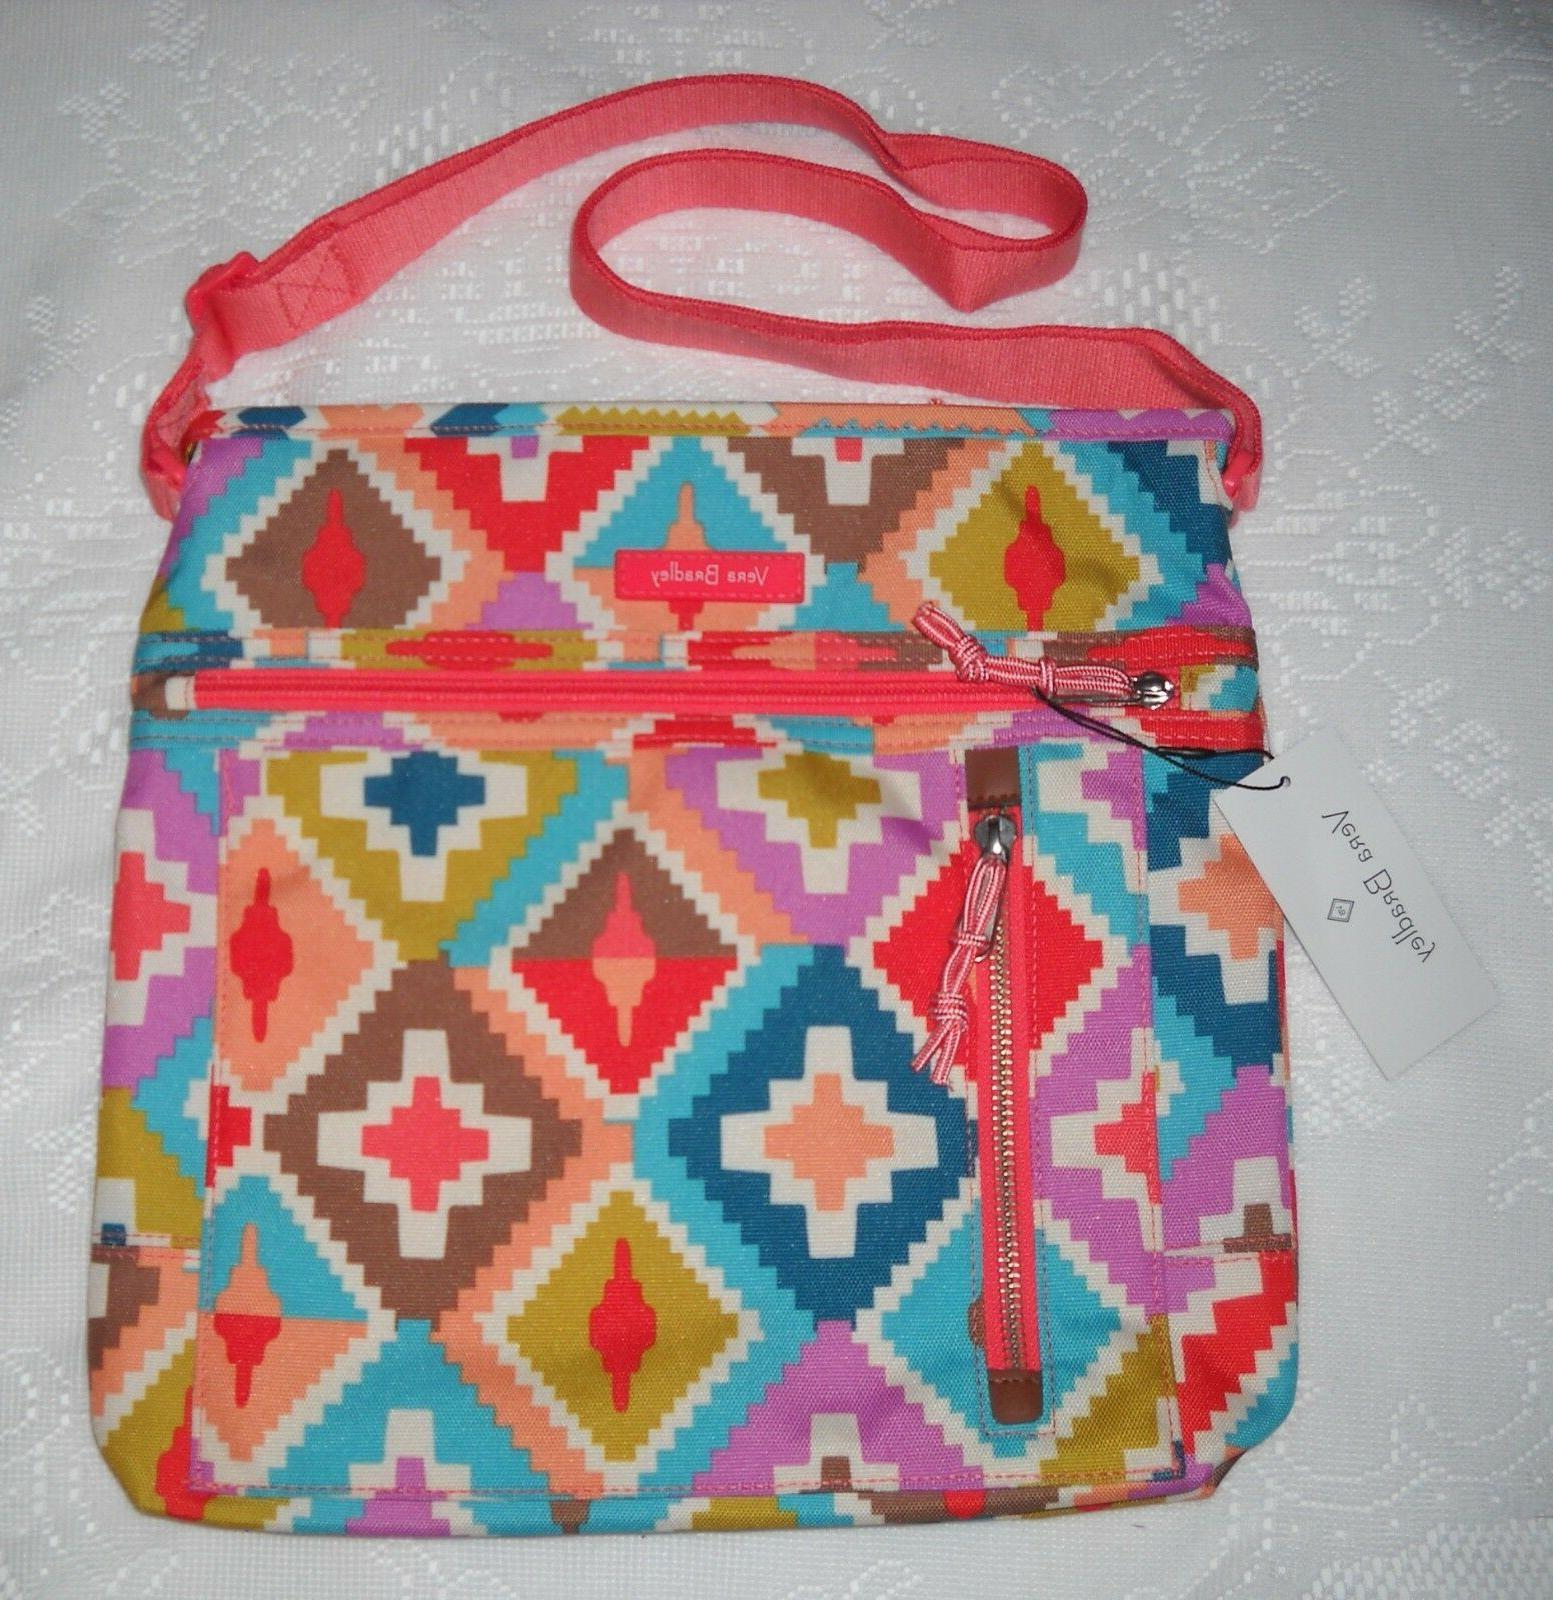 NWT VERA BRADLEY TRAVEL READY CROSSBODY HACIENDA DIAMONDS BA